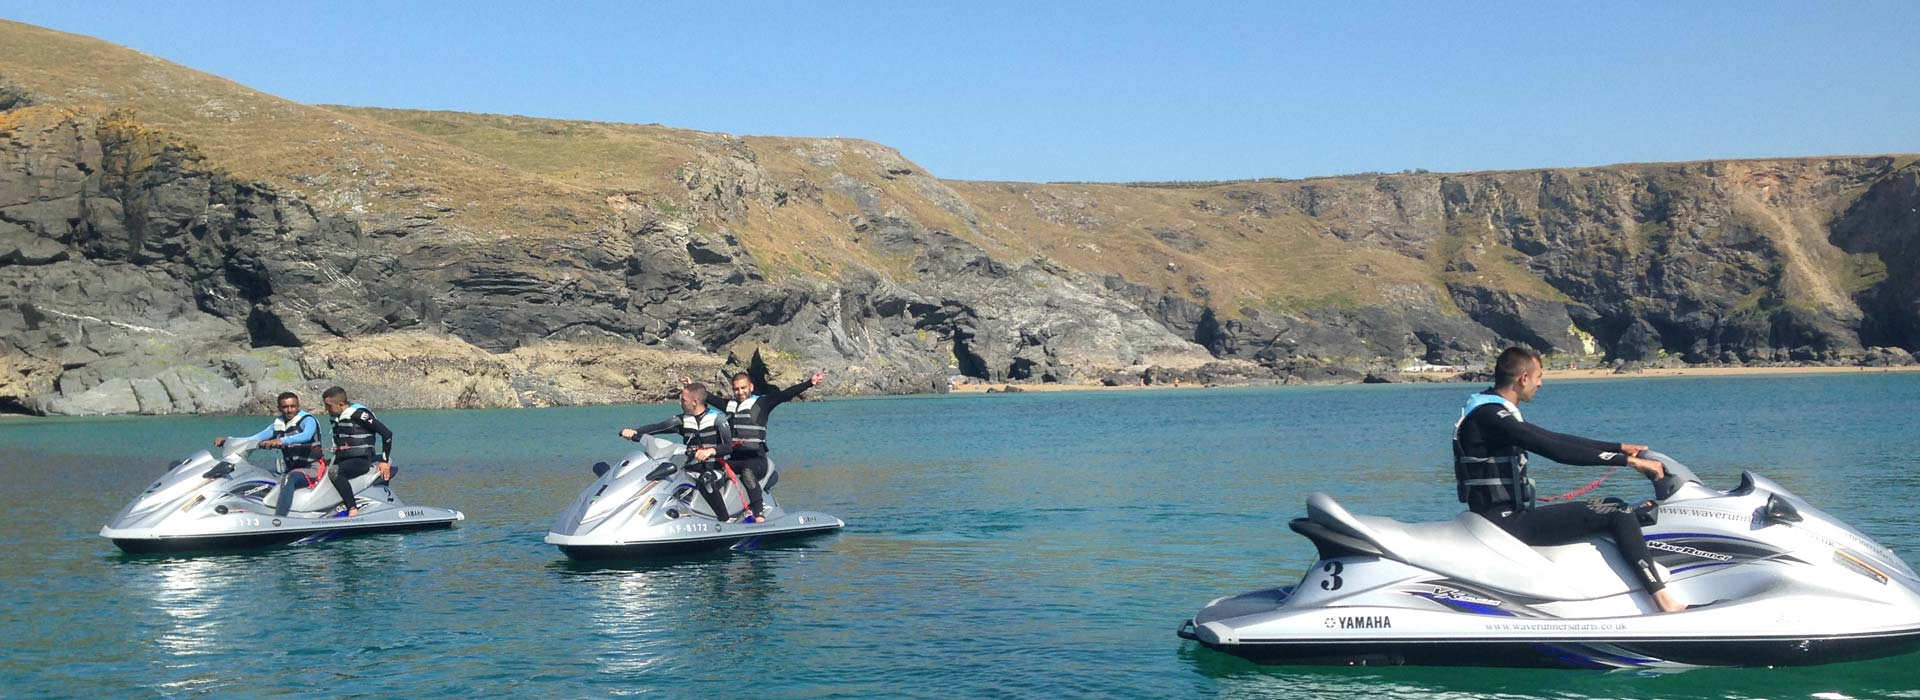 jet ski hire and safaris Newquay Cornwall water sports Centre